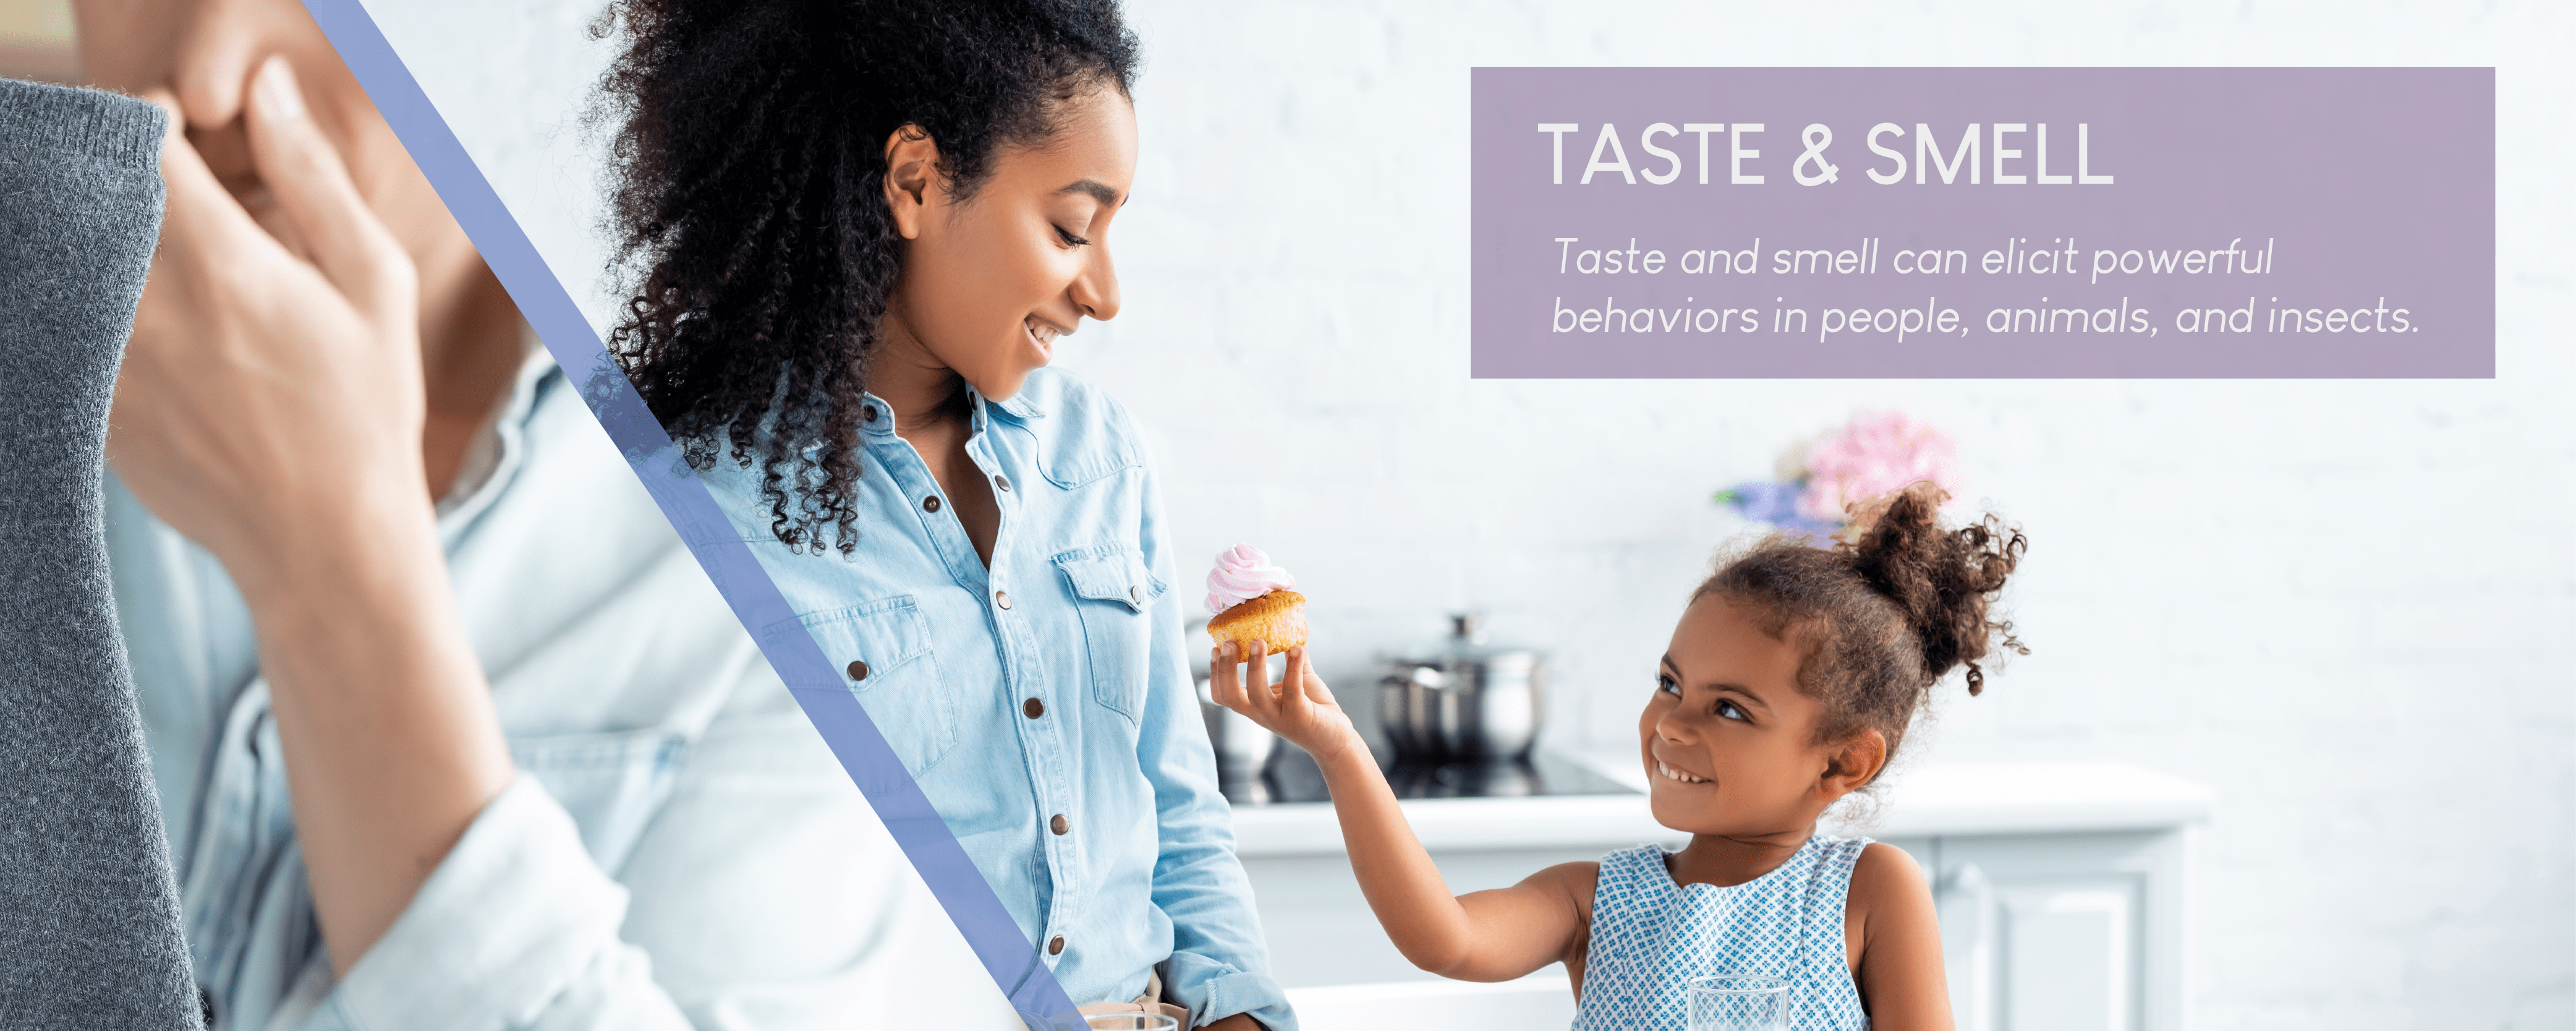 Taste and smell can elicit powerful behaviors in people, animals, and insects.